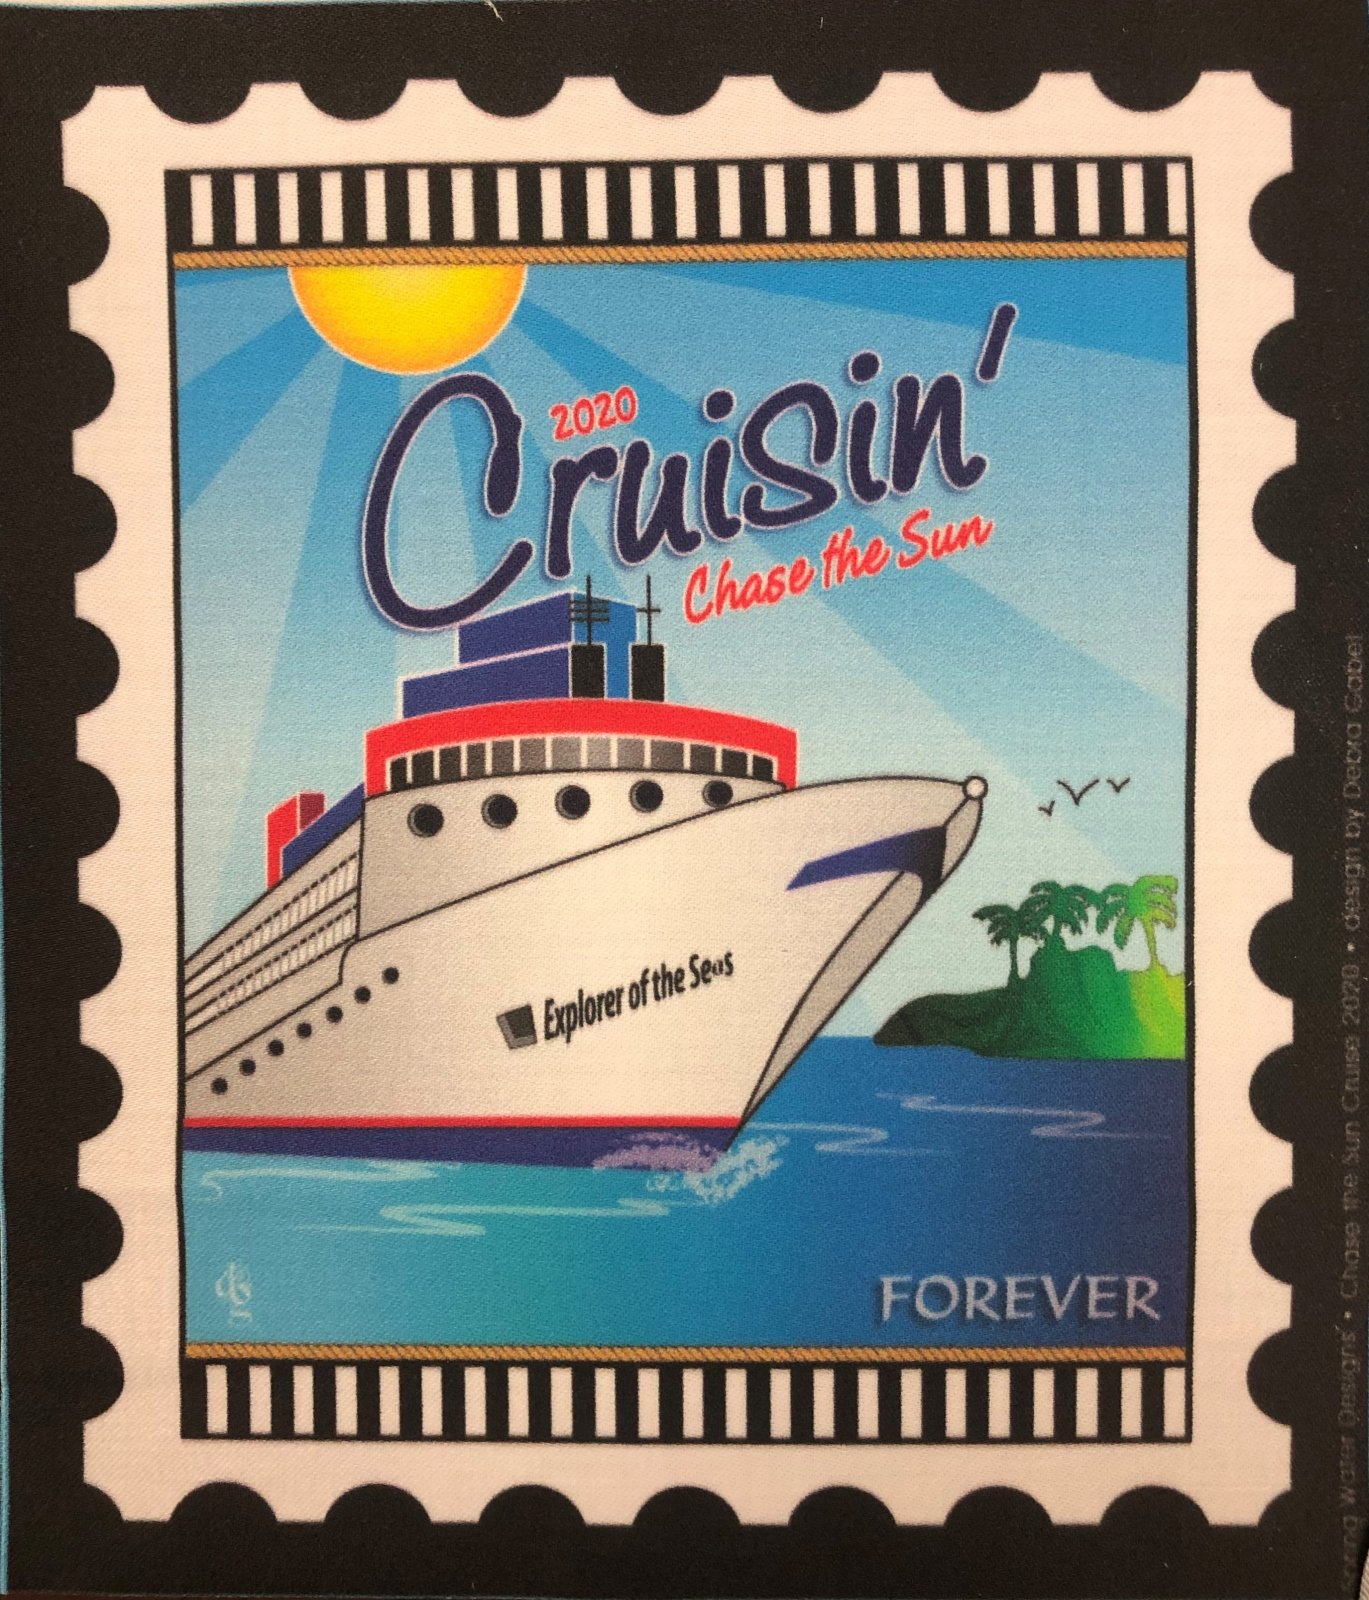 Chase the Sun Cruising Mini Stamp Fabric Panel 6 by 7